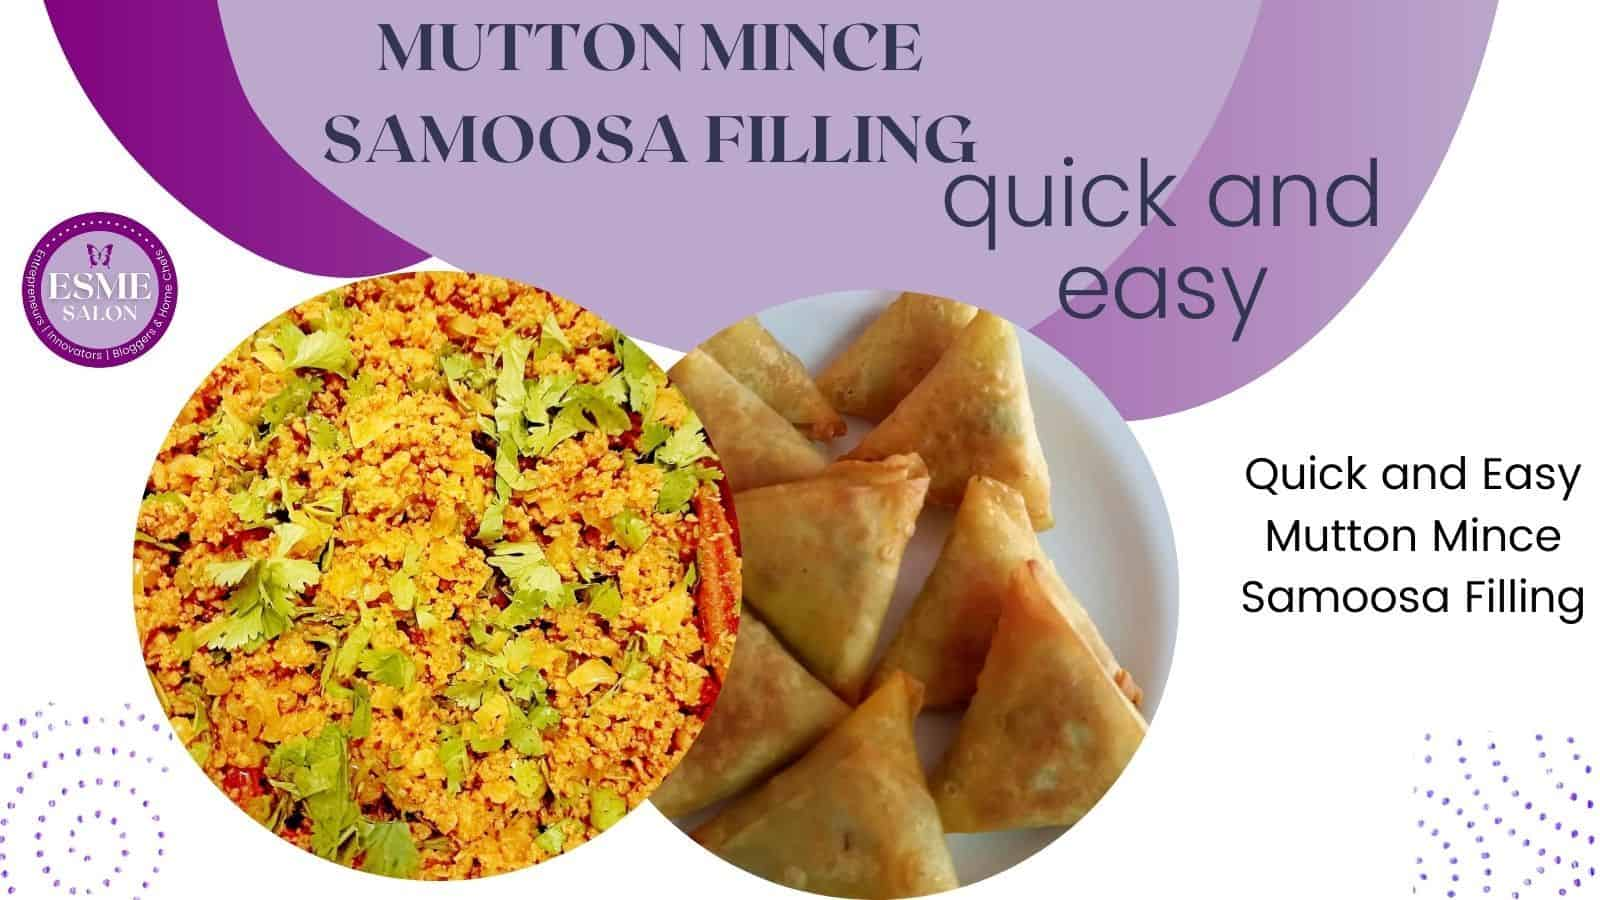 Quick and Easy Mutton Mince Samoosa Filling